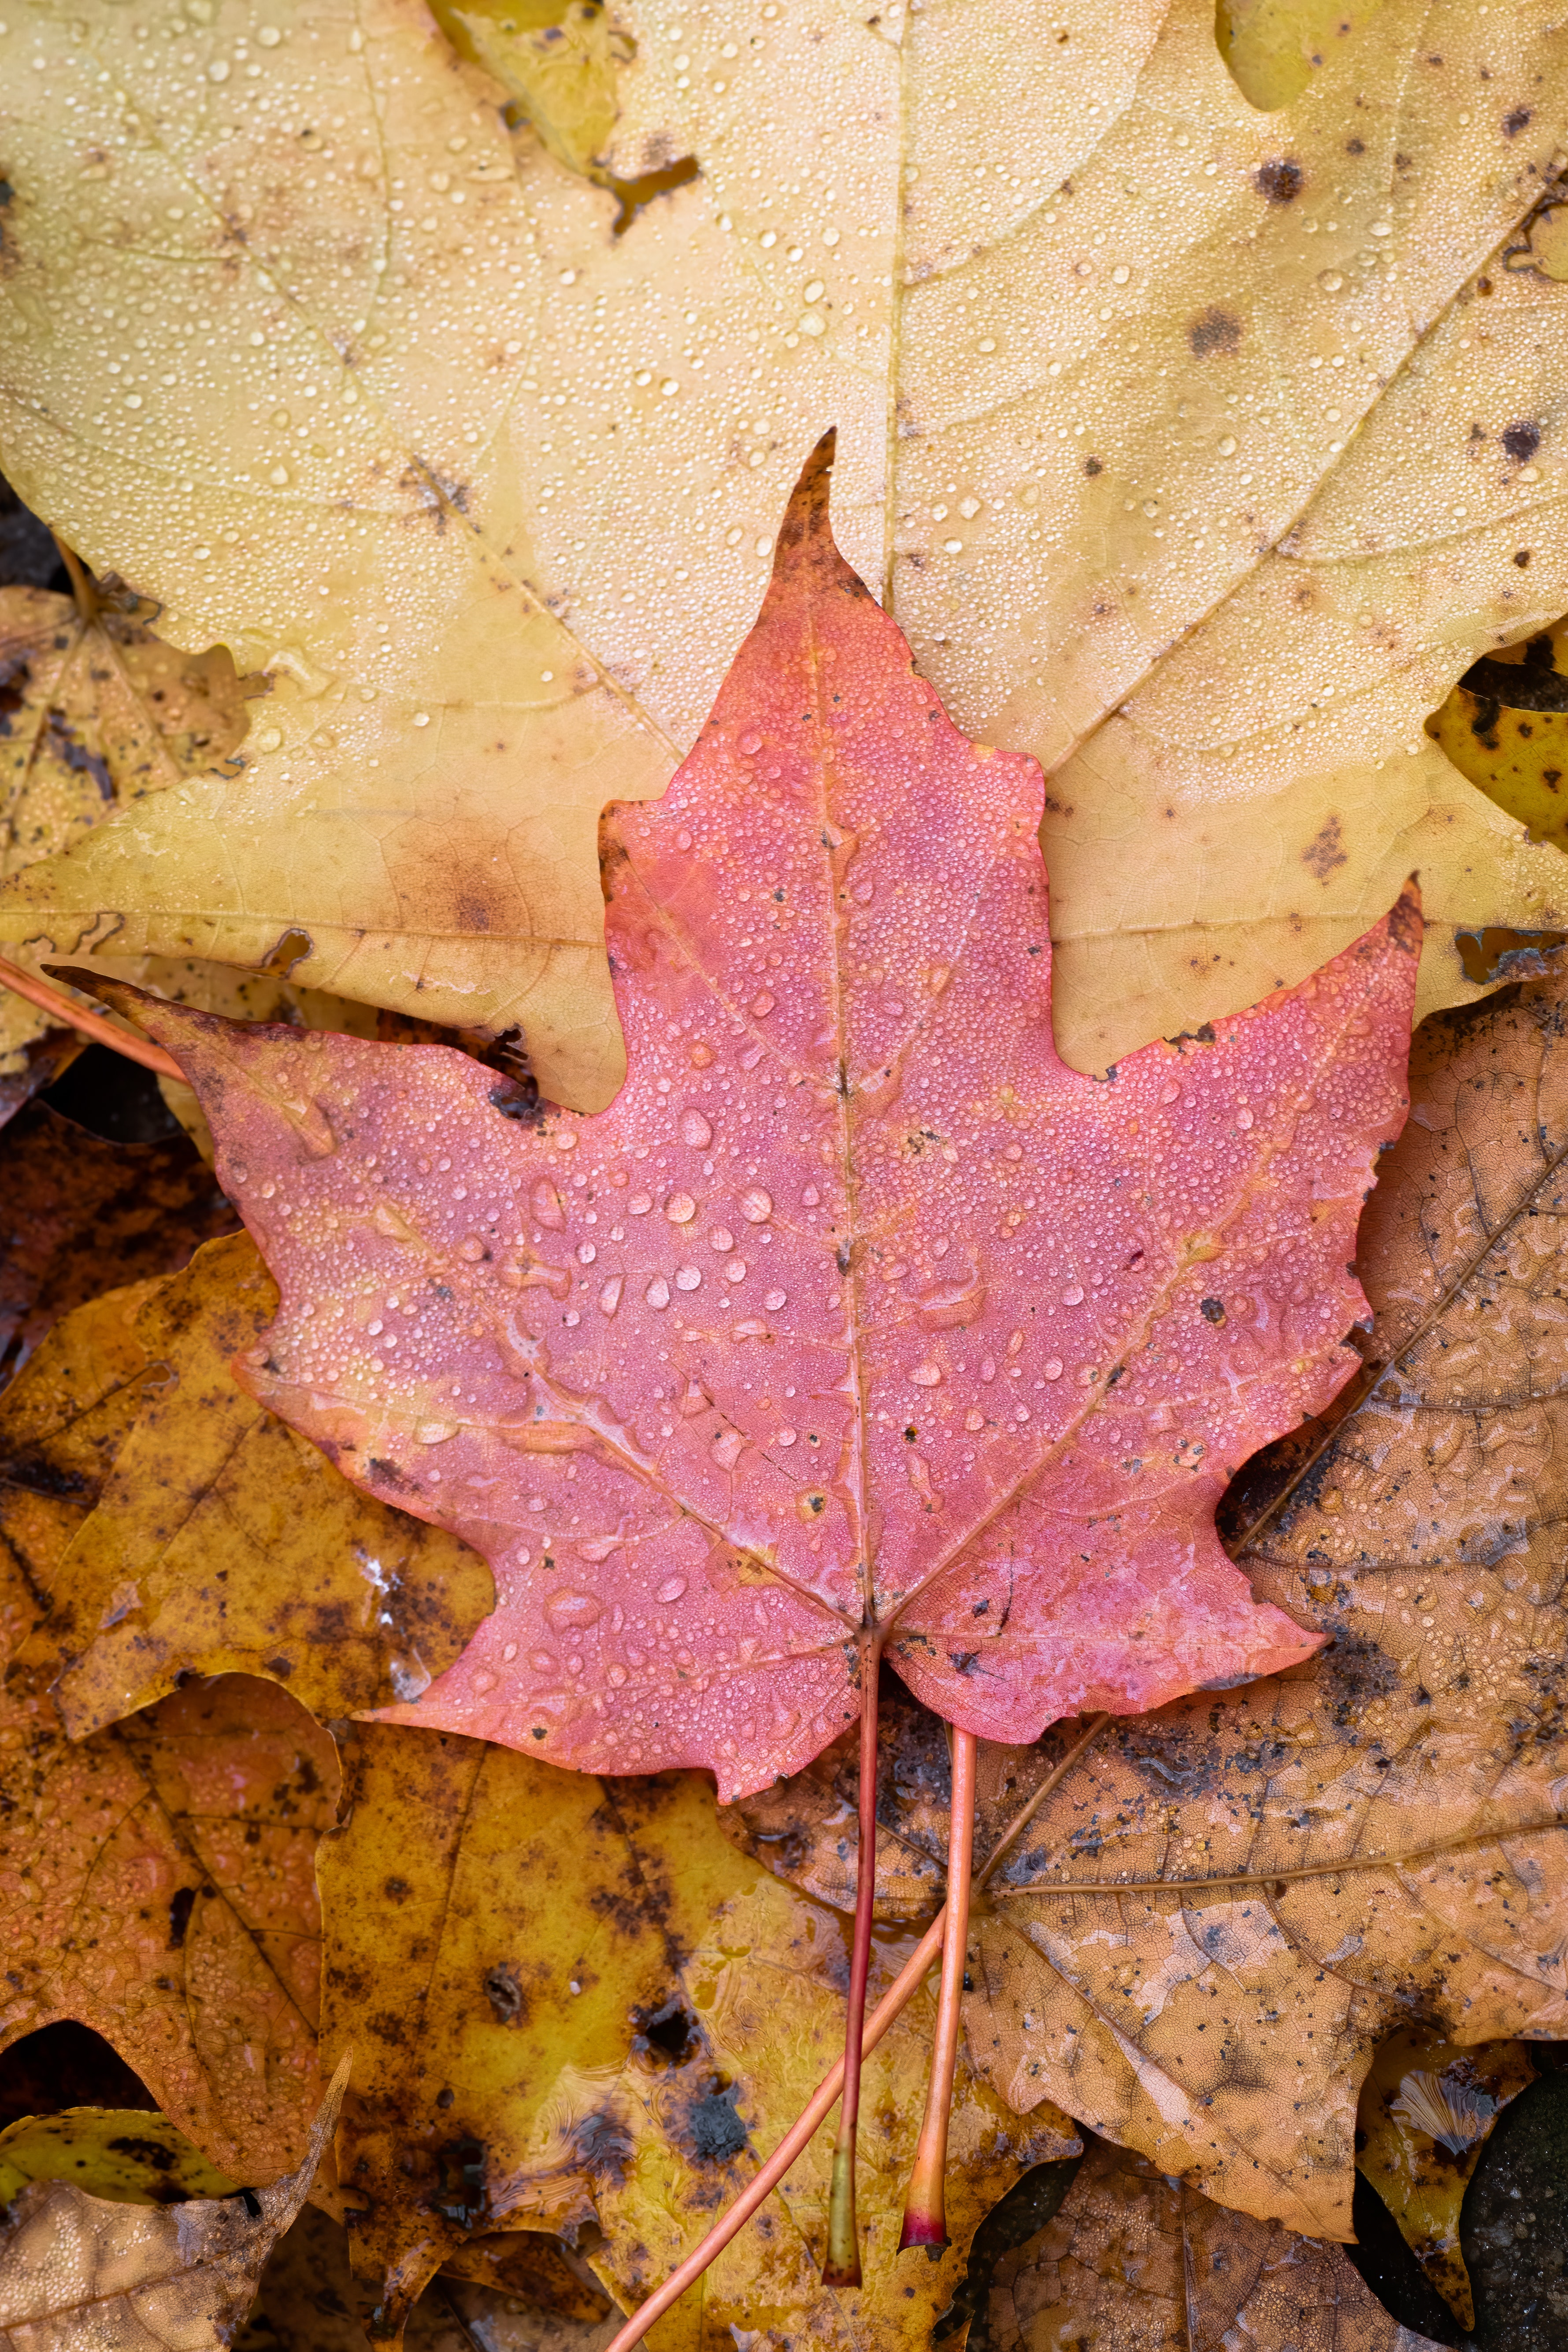 118324 download wallpaper Macro, Leaflet, Maple, Wet, Autumn screensavers and pictures for free